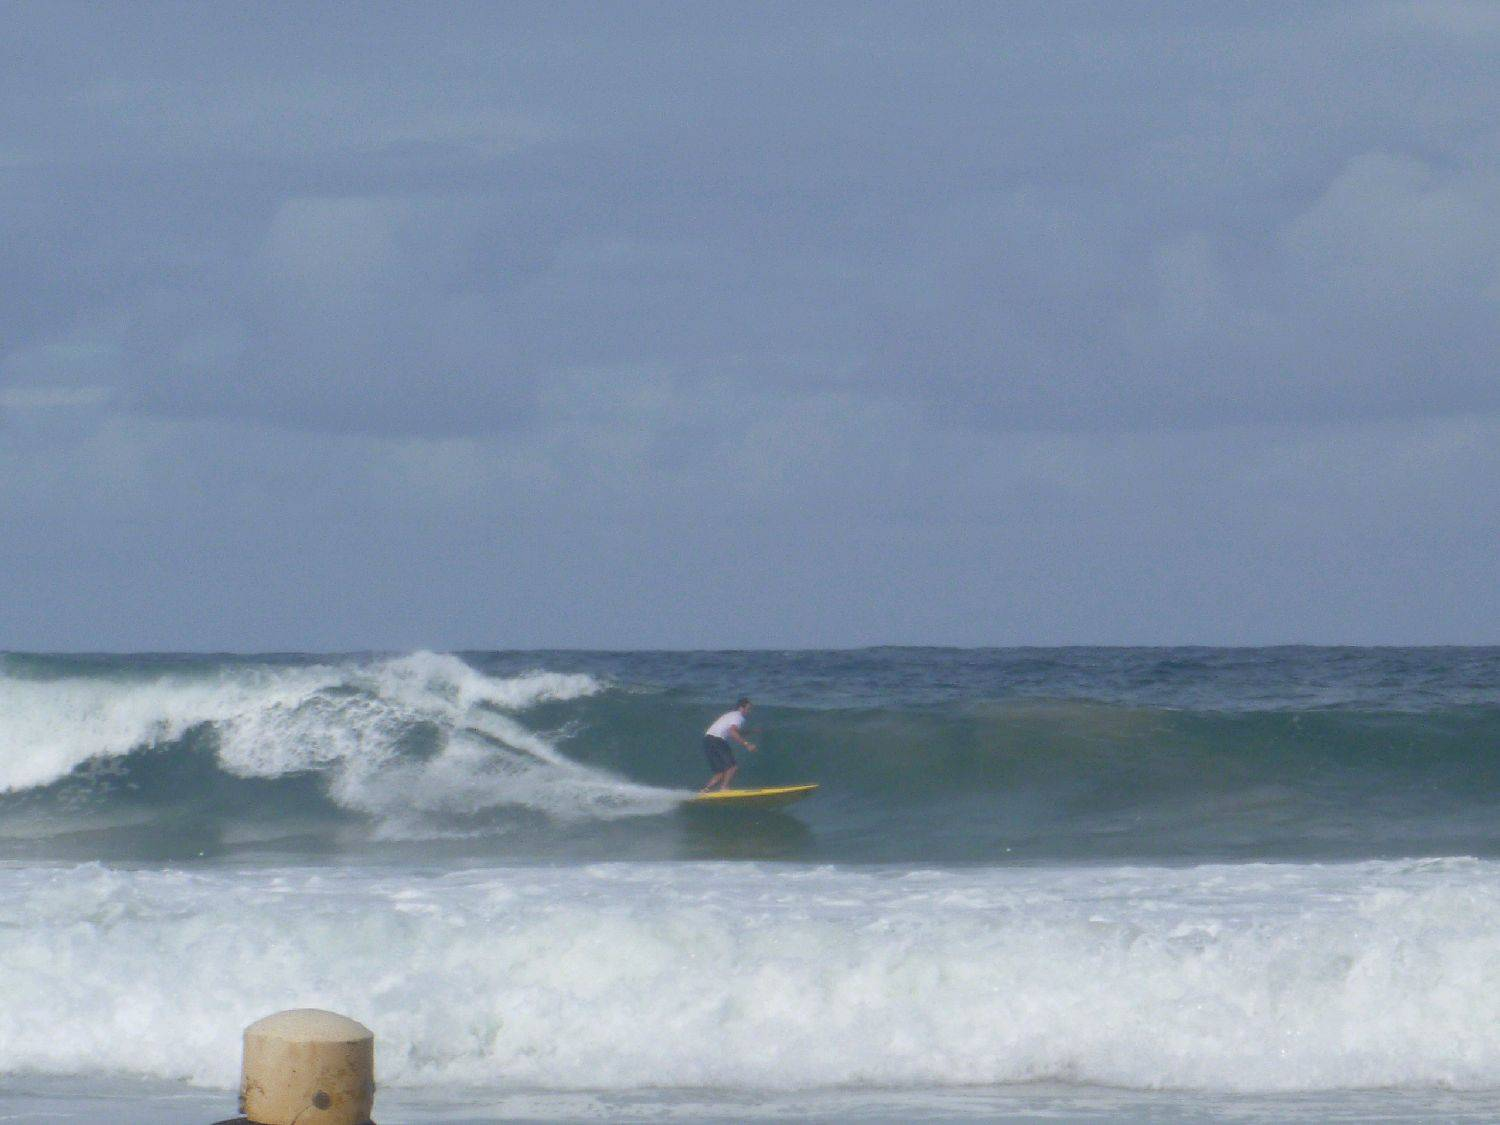 Testing the naish gun out pool stand up paddle forums for Stand up pool